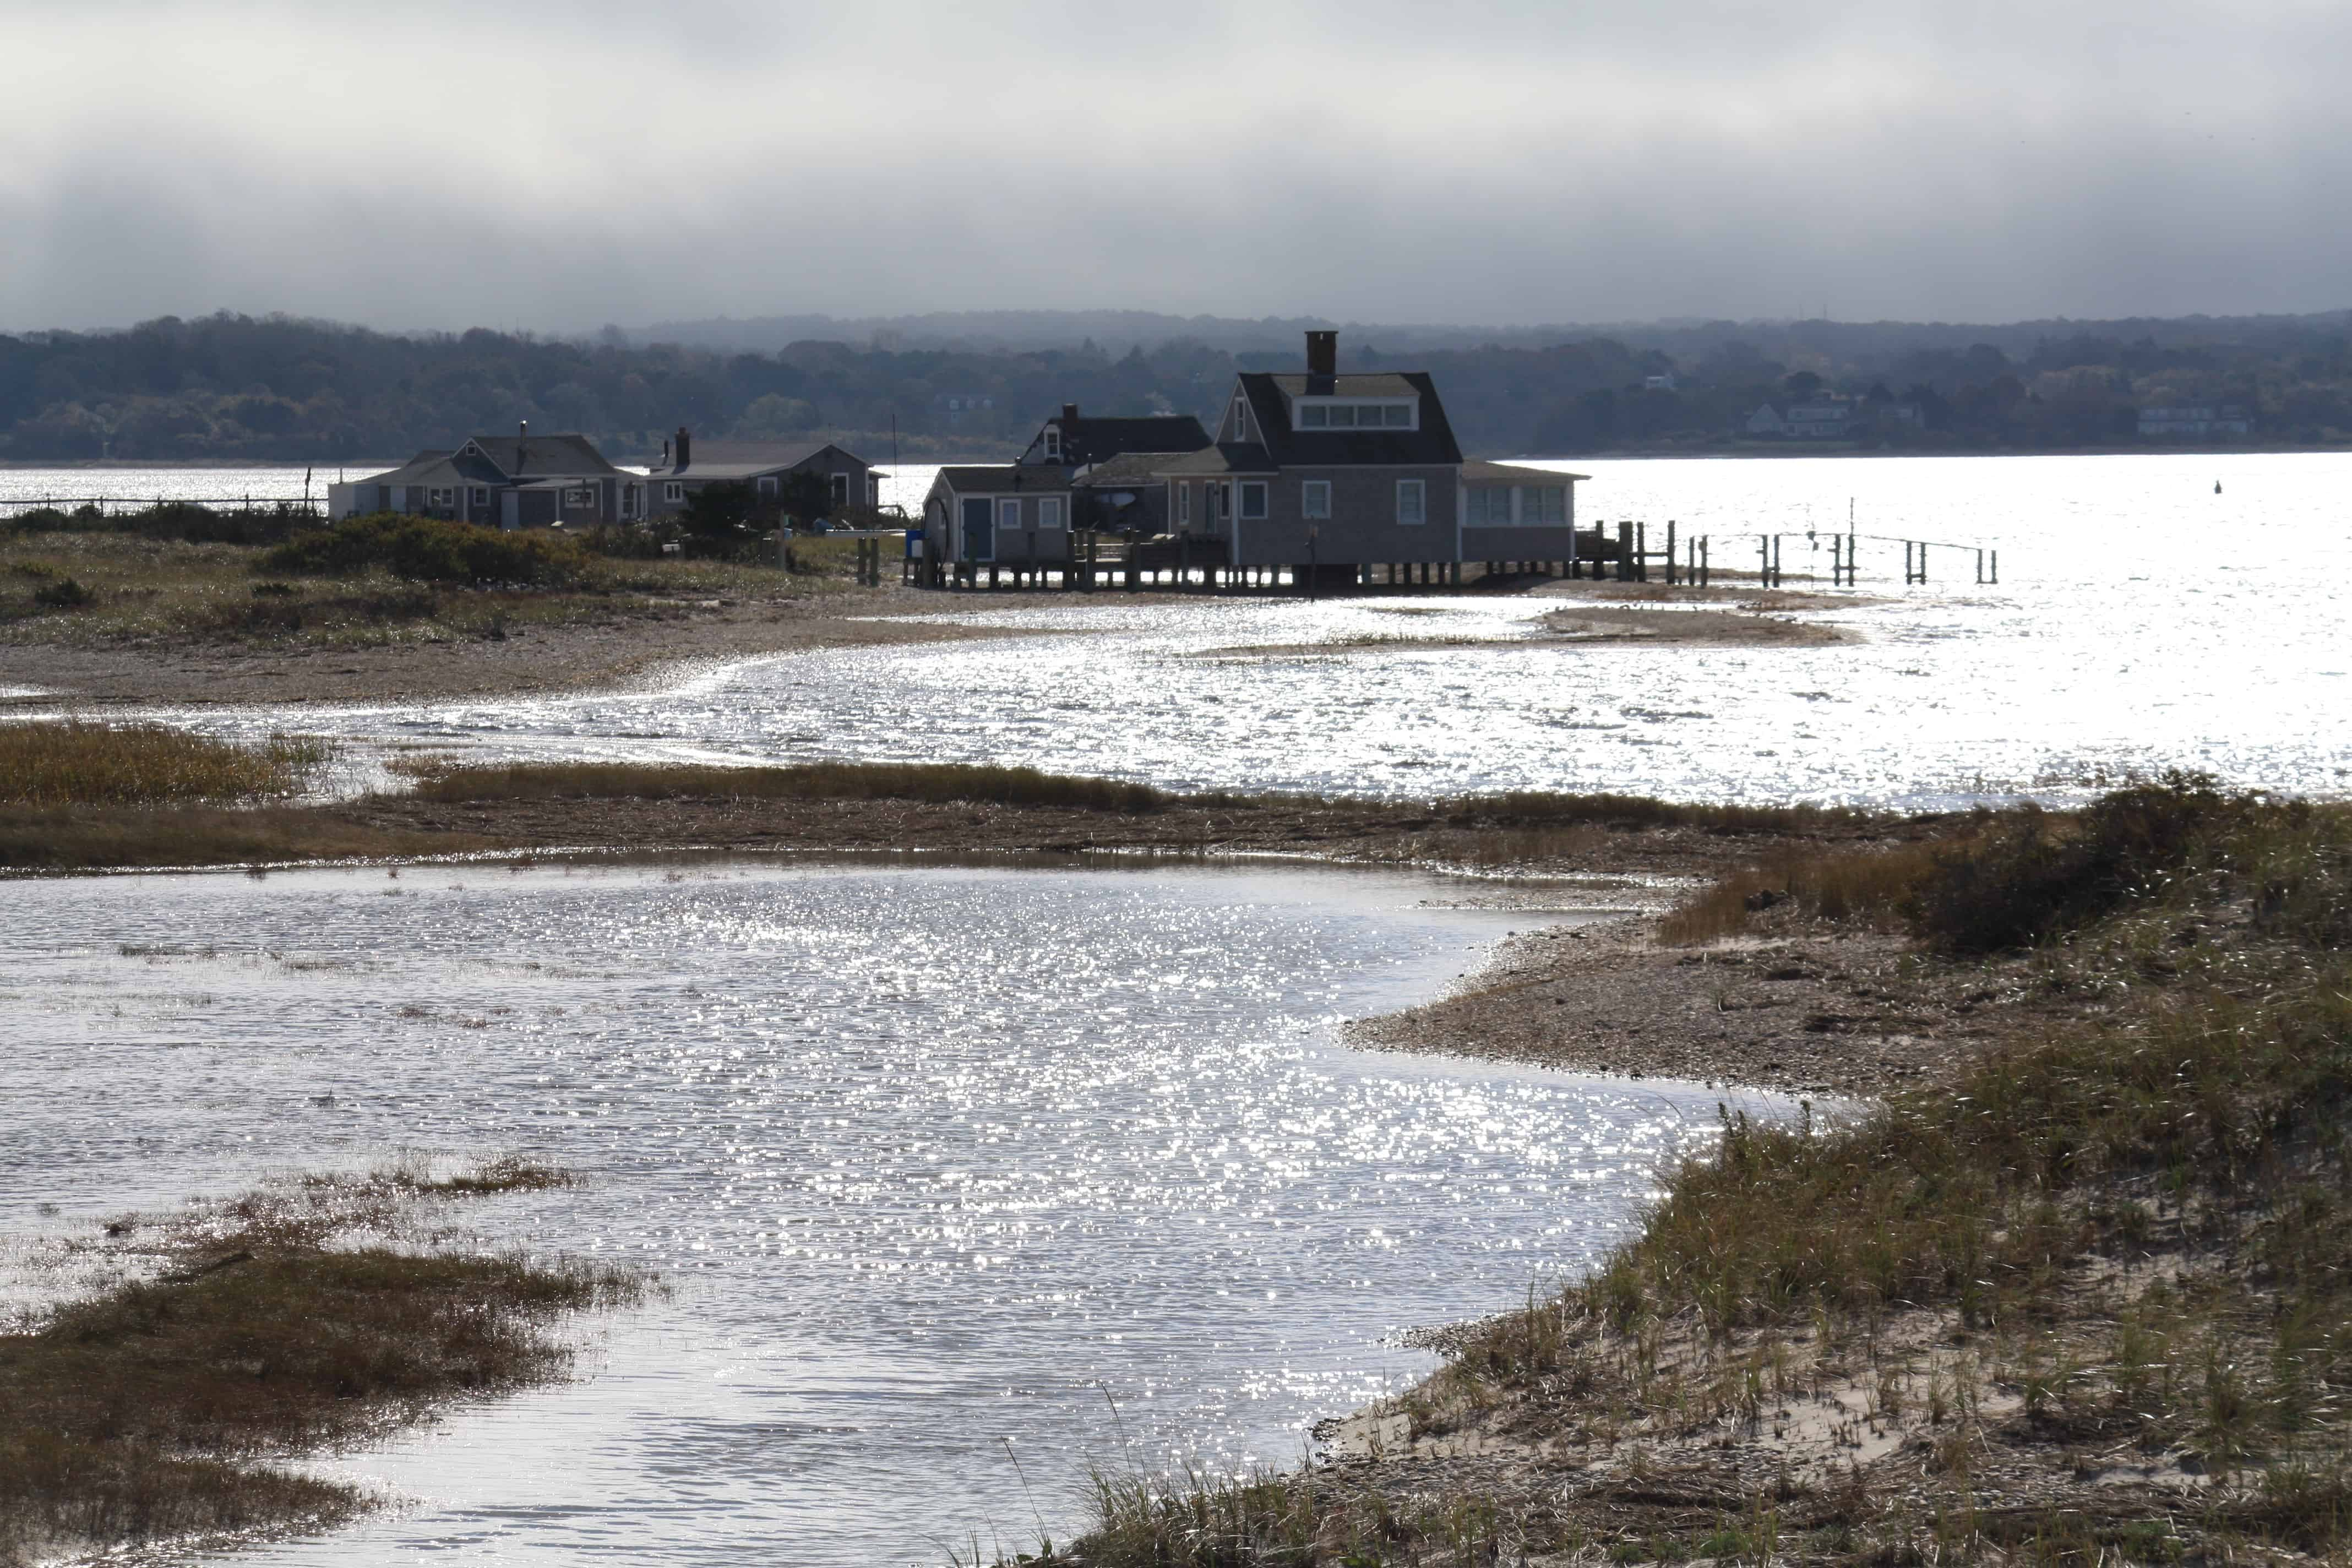 Superior How To Get To Cape Cod Part - 10: Get Off The Beaten Path And See Authentic Cape Cod